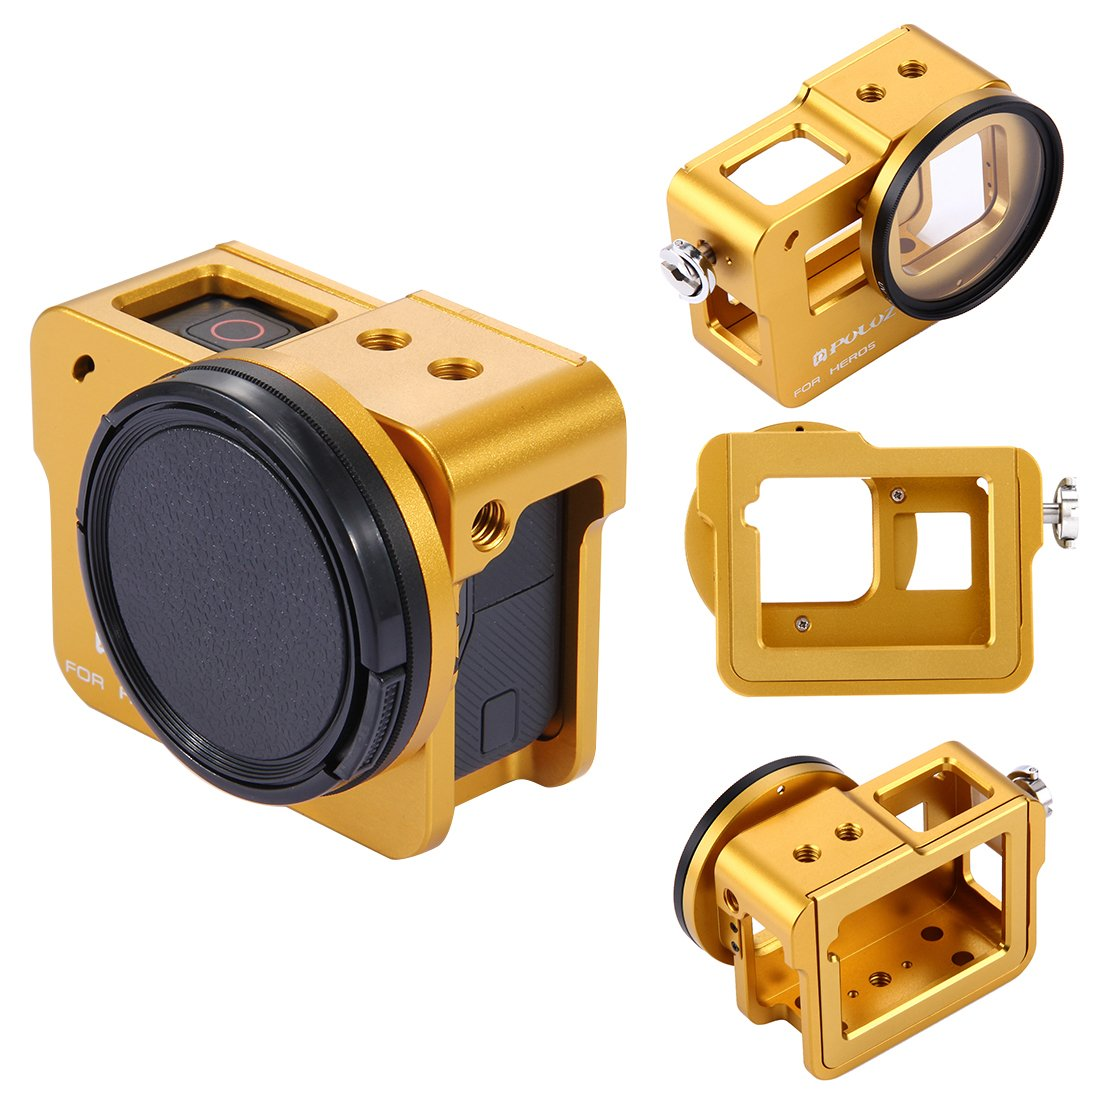 PULUZ Housing Shell Case CNC Aluminum Alloy Protective Cage with Insurance Frame & 52mm UV Lens for GoPro HERO 6/ 5 (Gold)